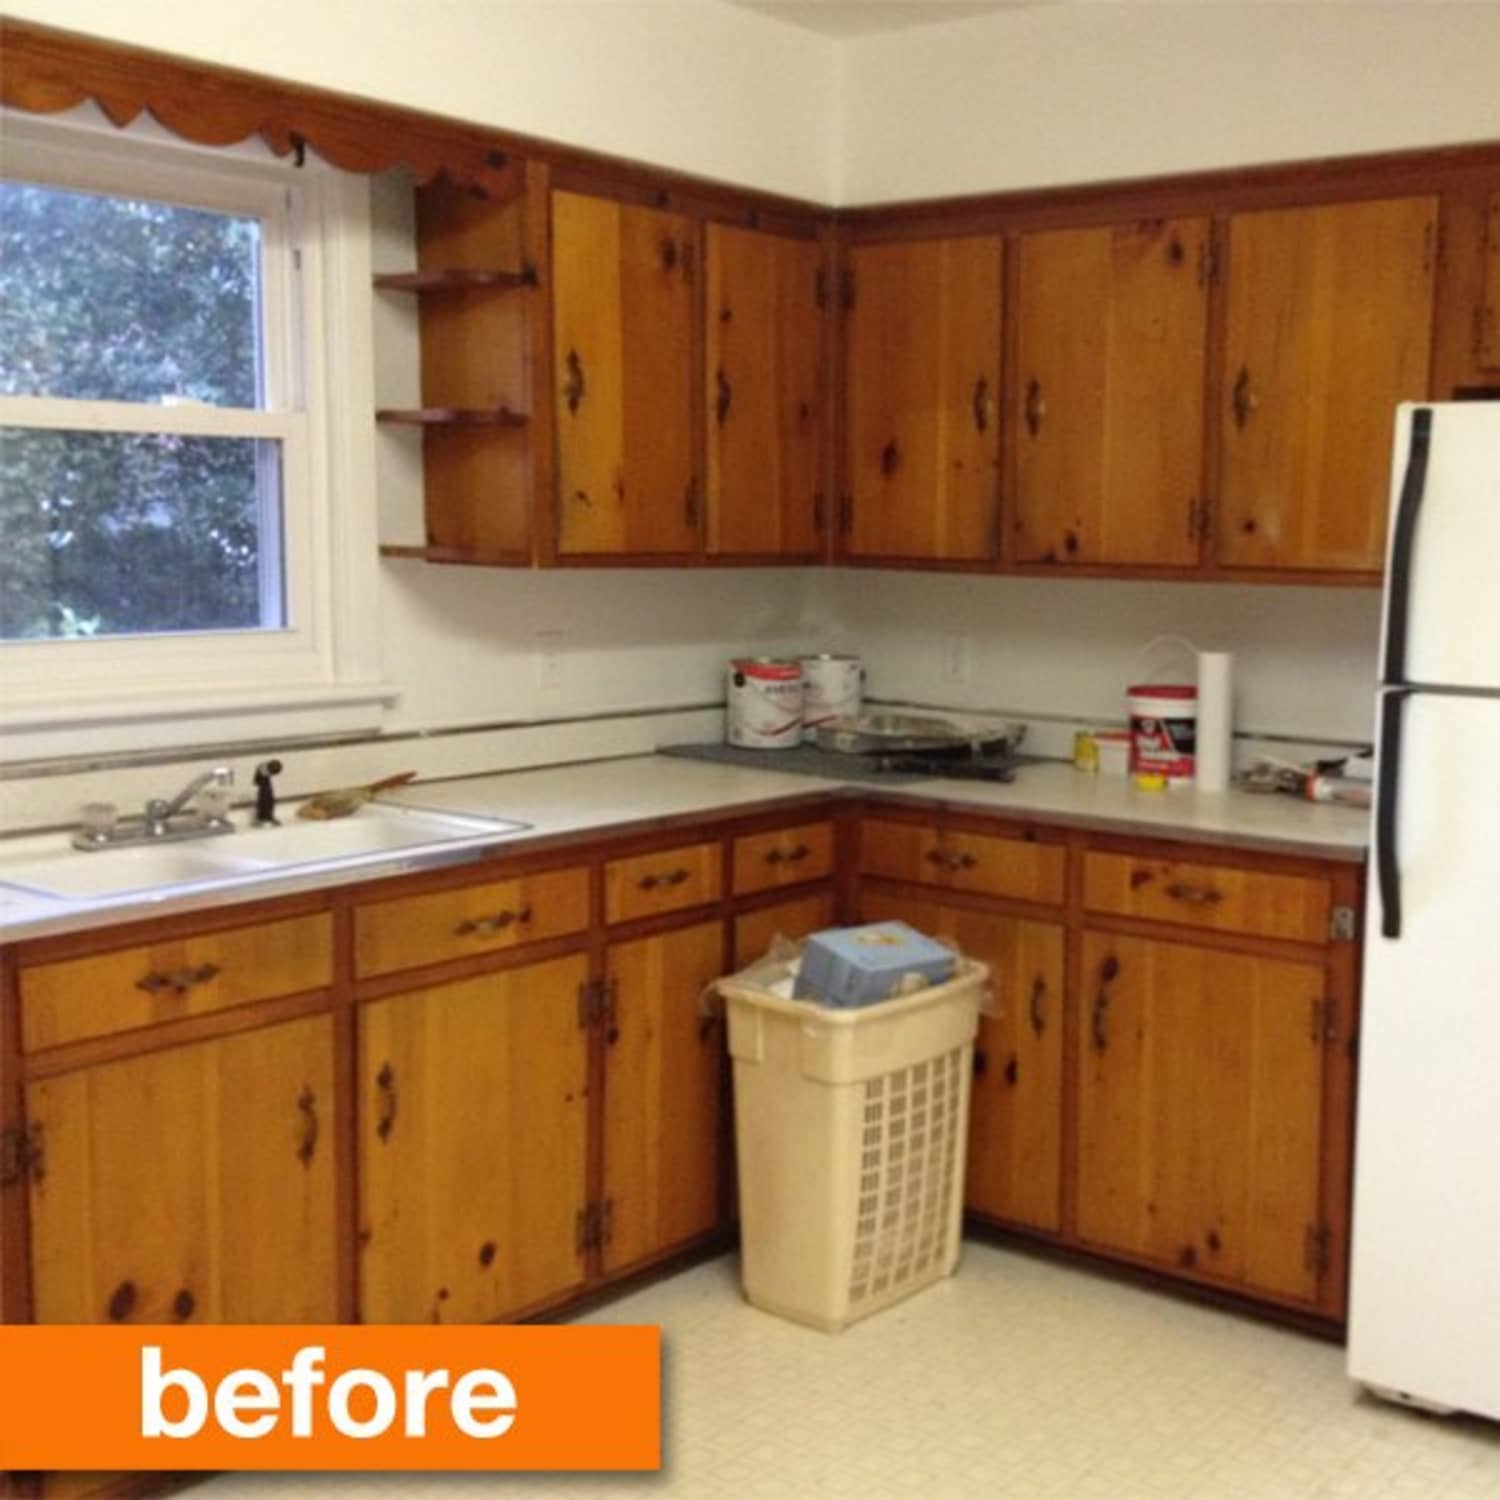 Before After A 1950s Kitchen Gets A Modern Diy Makeover Apartment Therapy